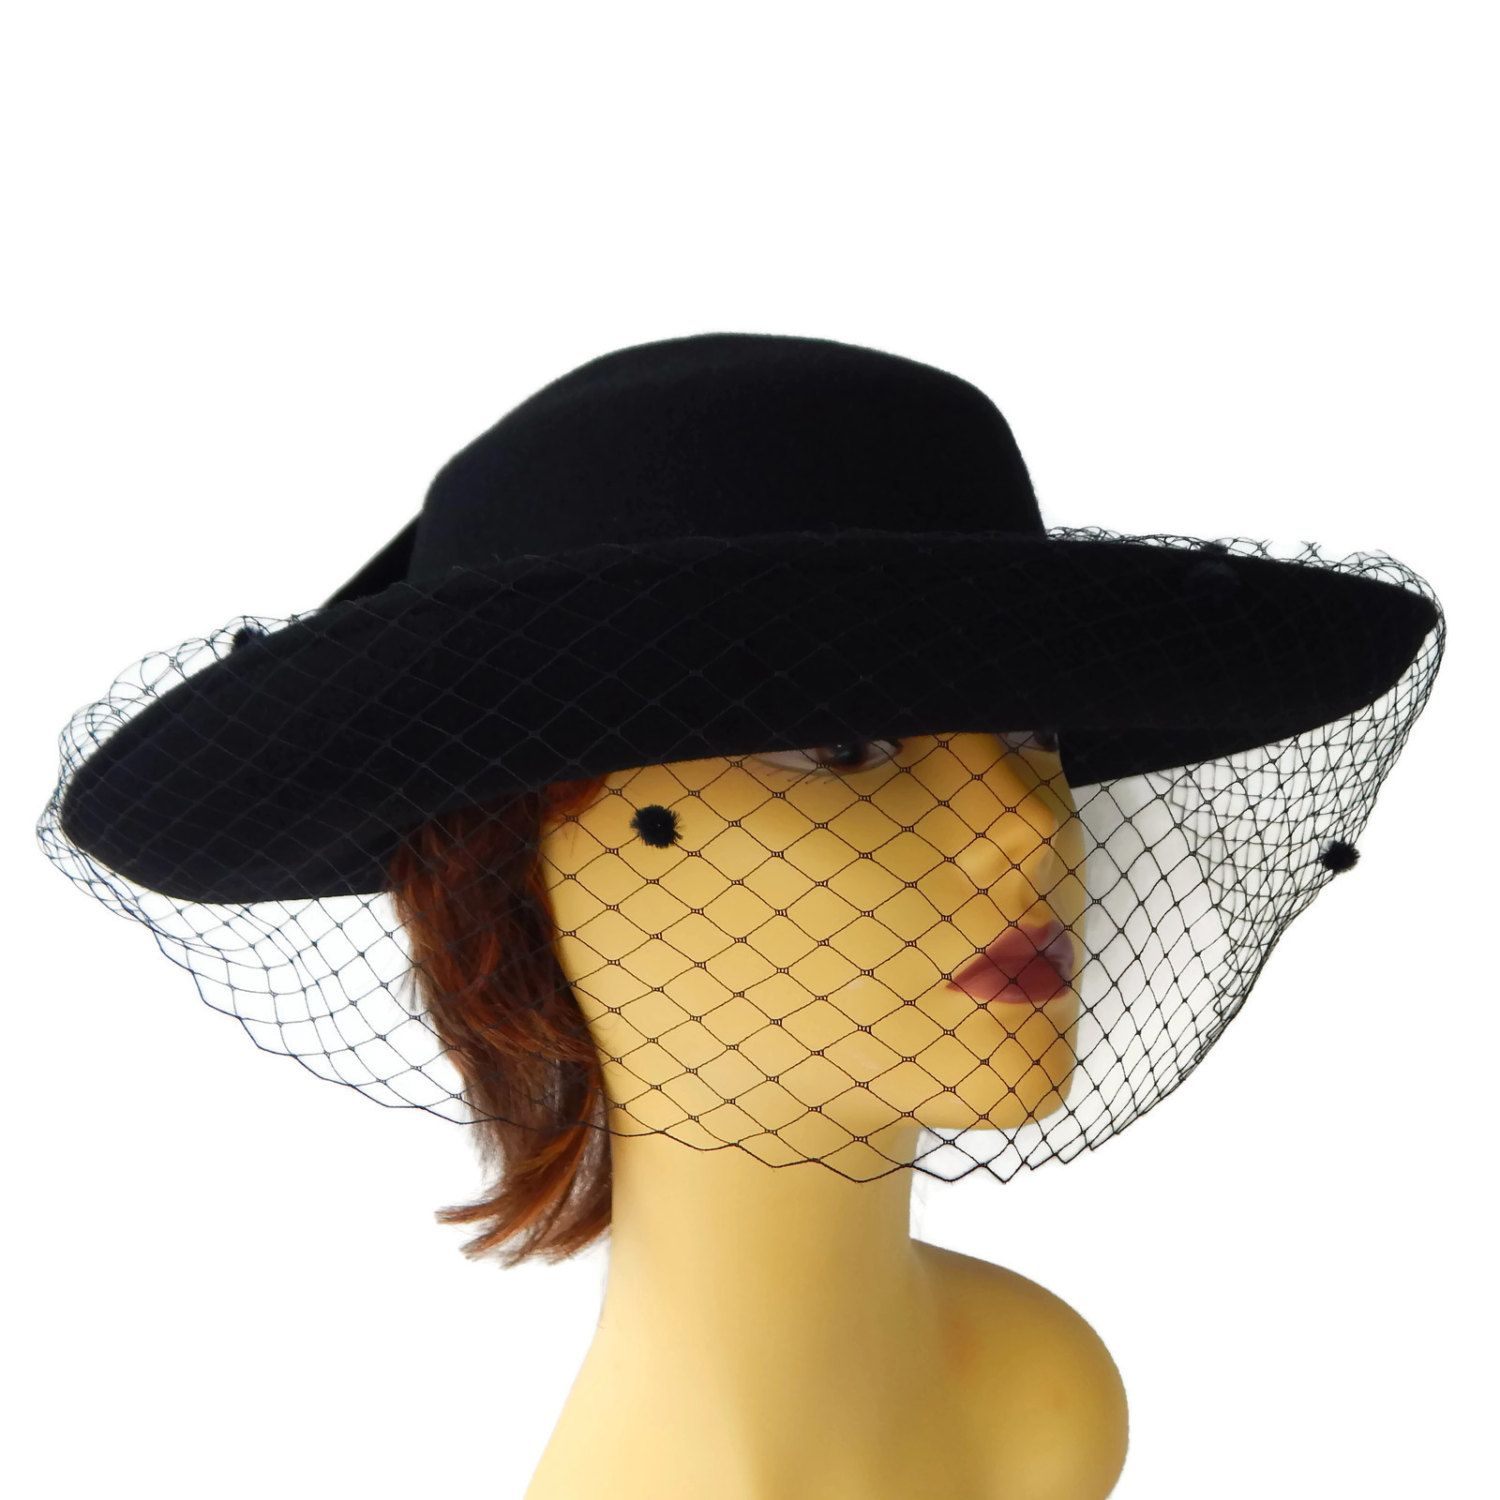 Wide Brim Hat Black with Netting and Big Bow Designer Michael Howard Wool  Hat by EclecticVintager on Etsy ead6802f07e9